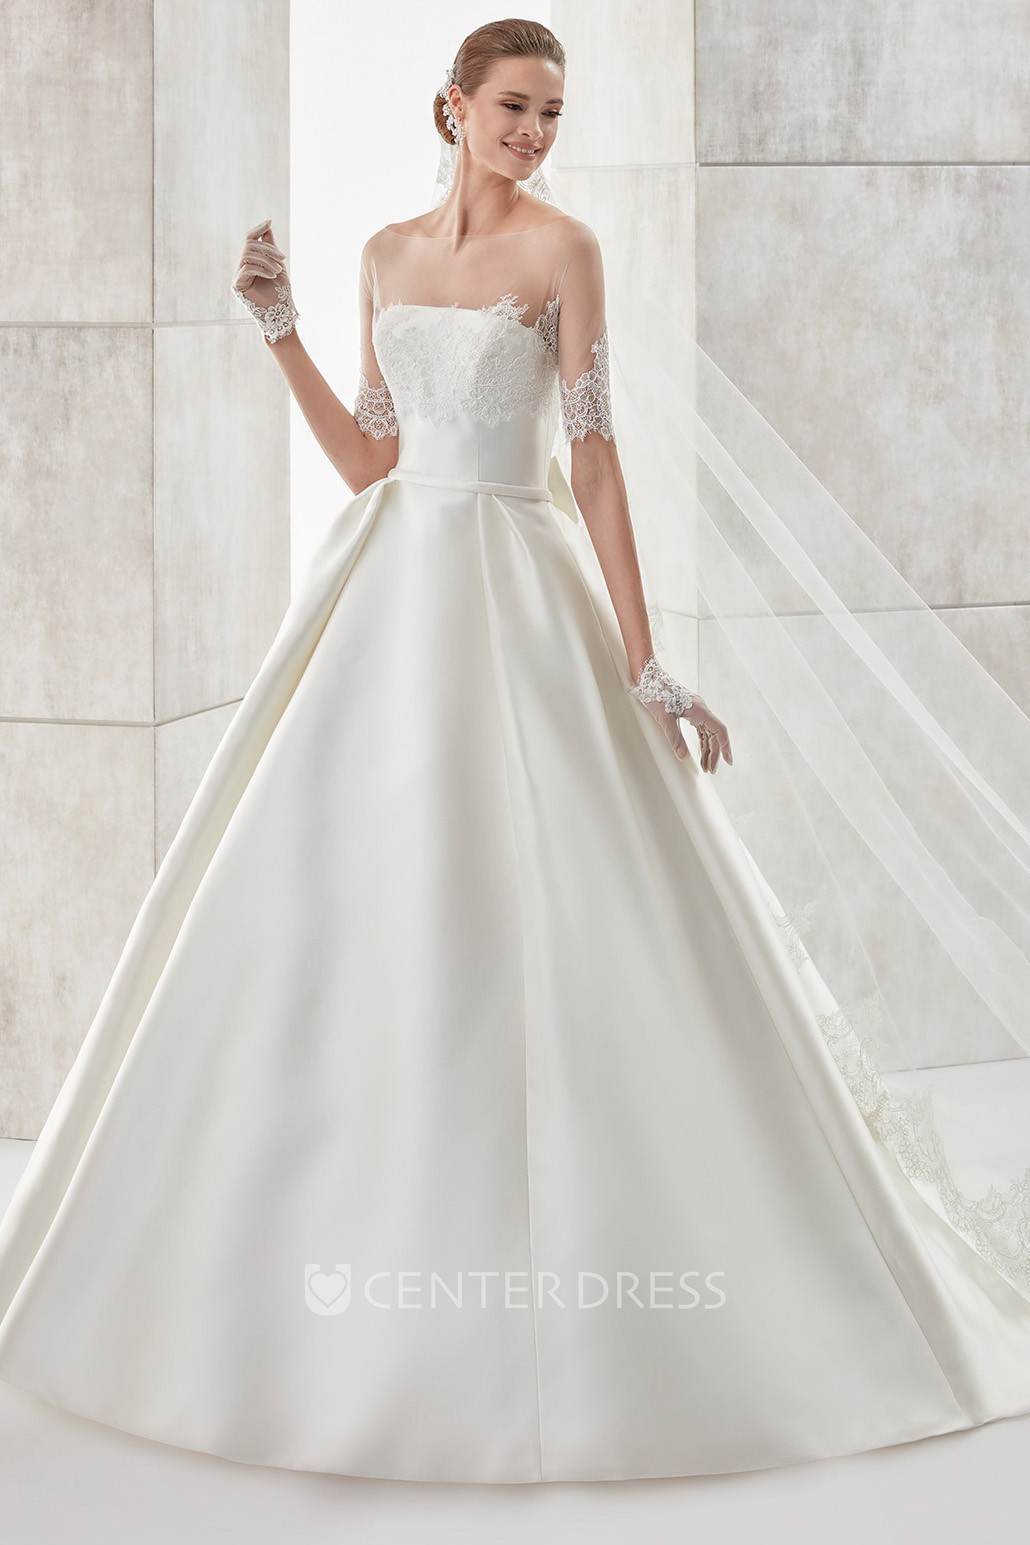 Strapless A Line Satin Wedding Dress With Detachable Illusion Lace